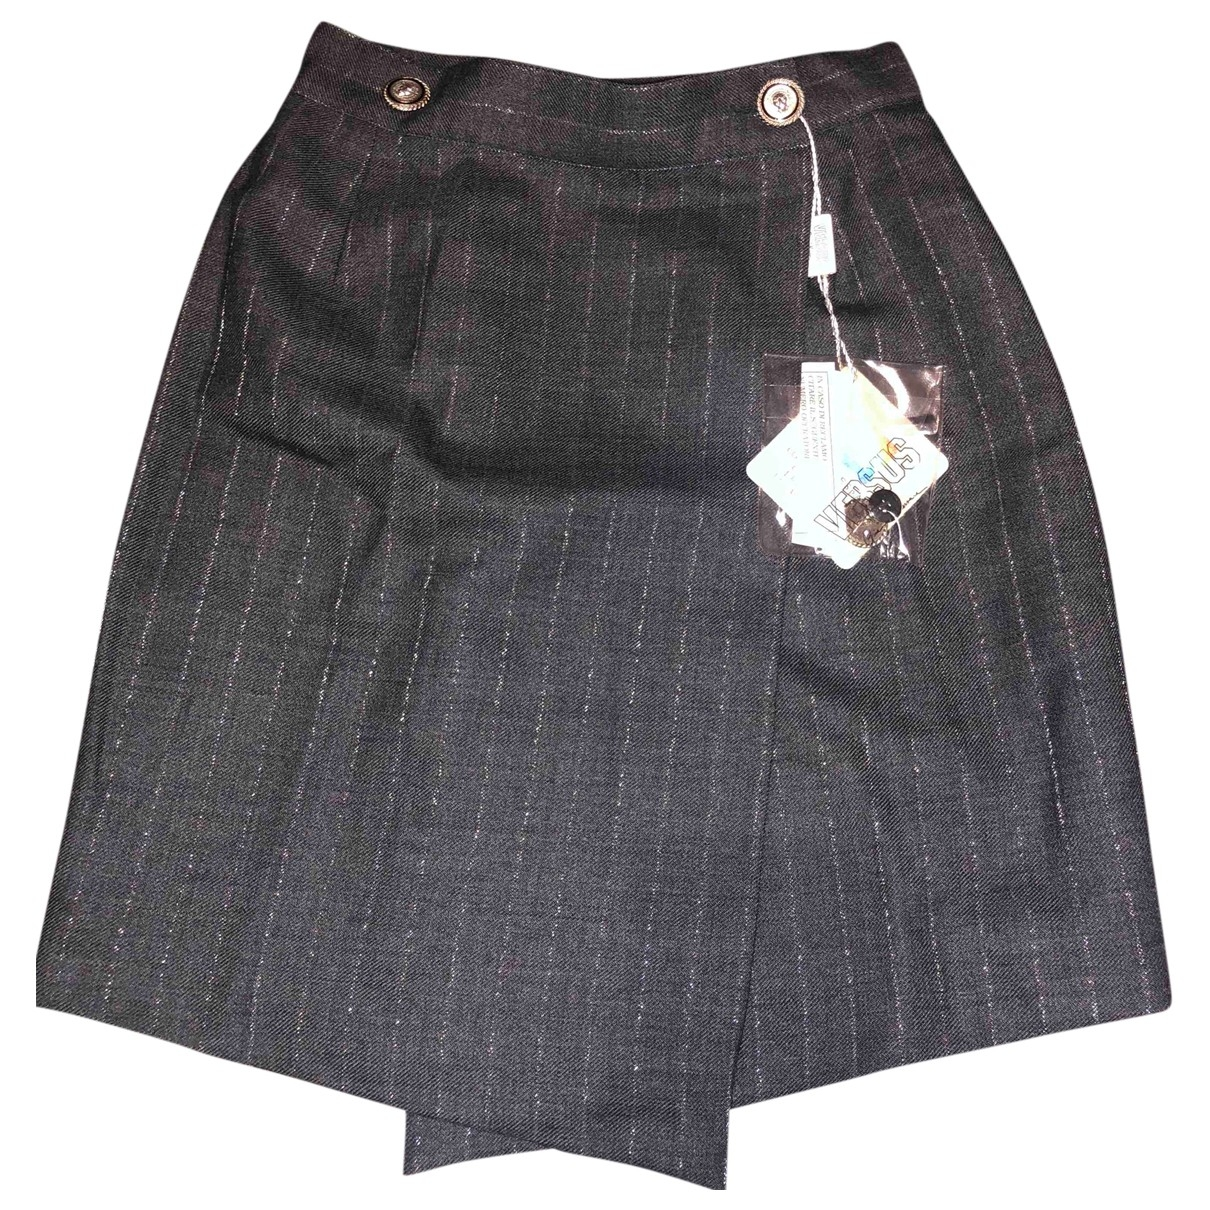 Versus \N Grey Wool skirt for Women 38 IT